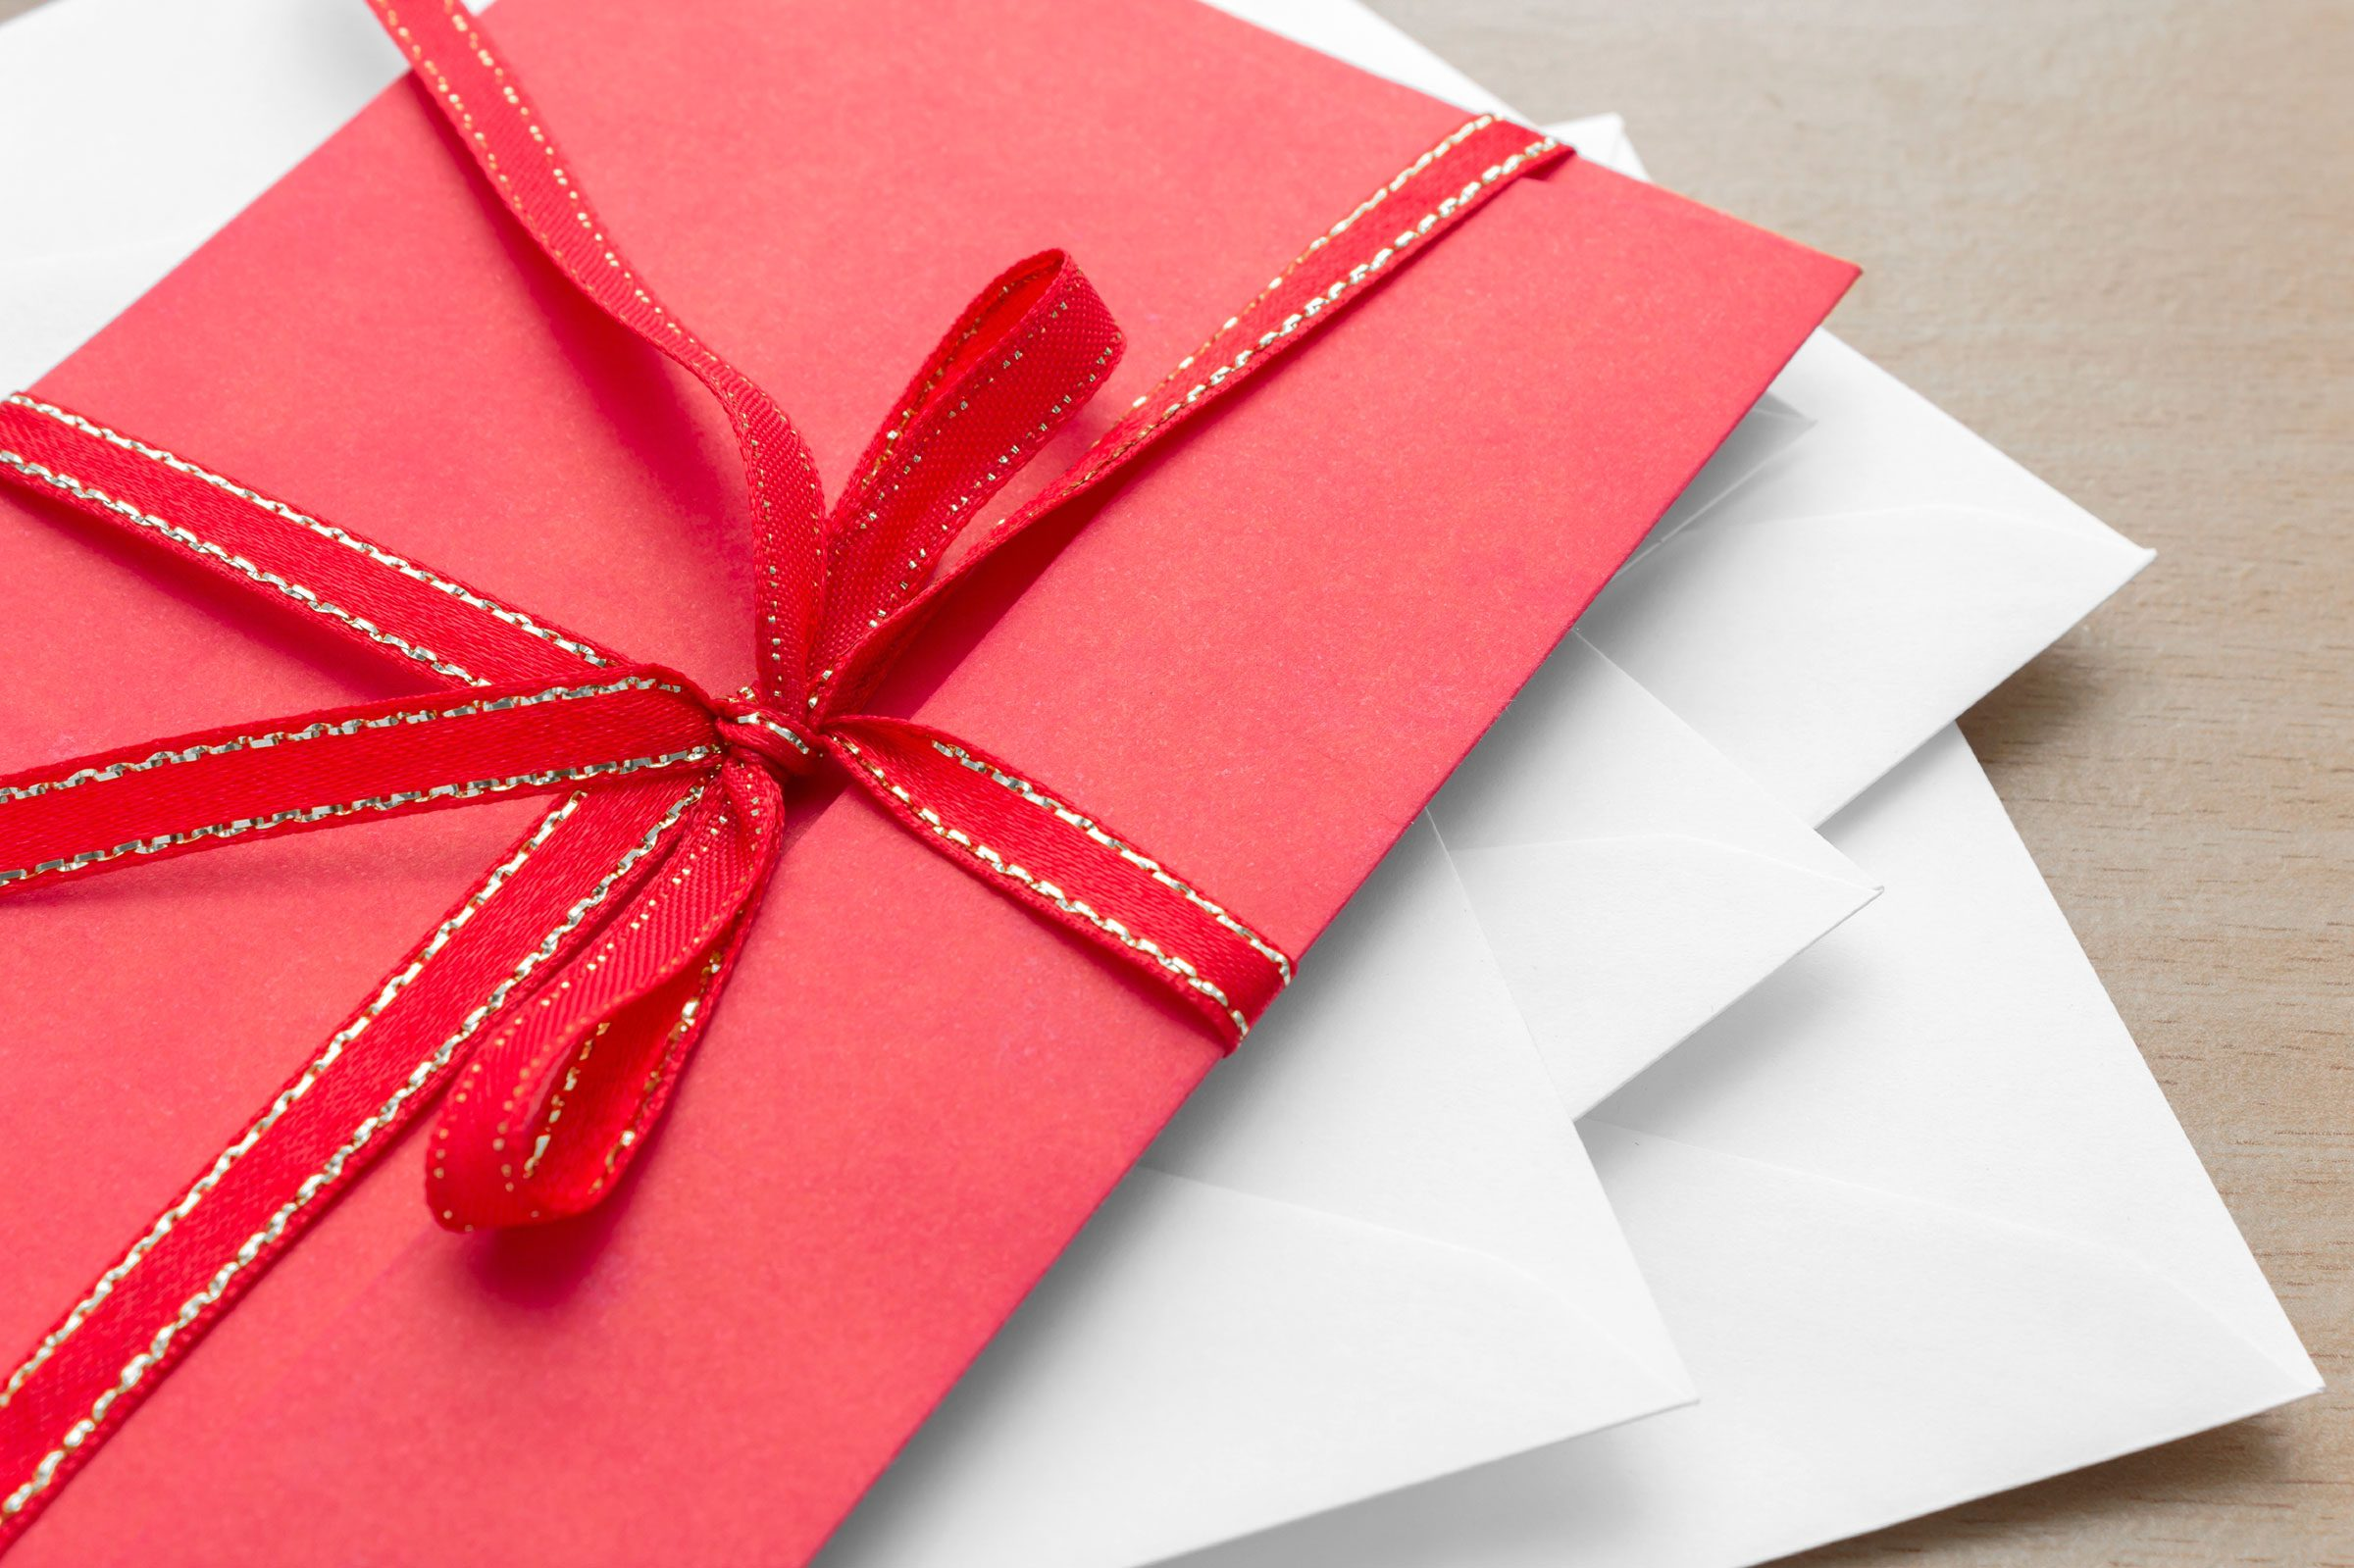 Christmas gift ideas for mail carrier